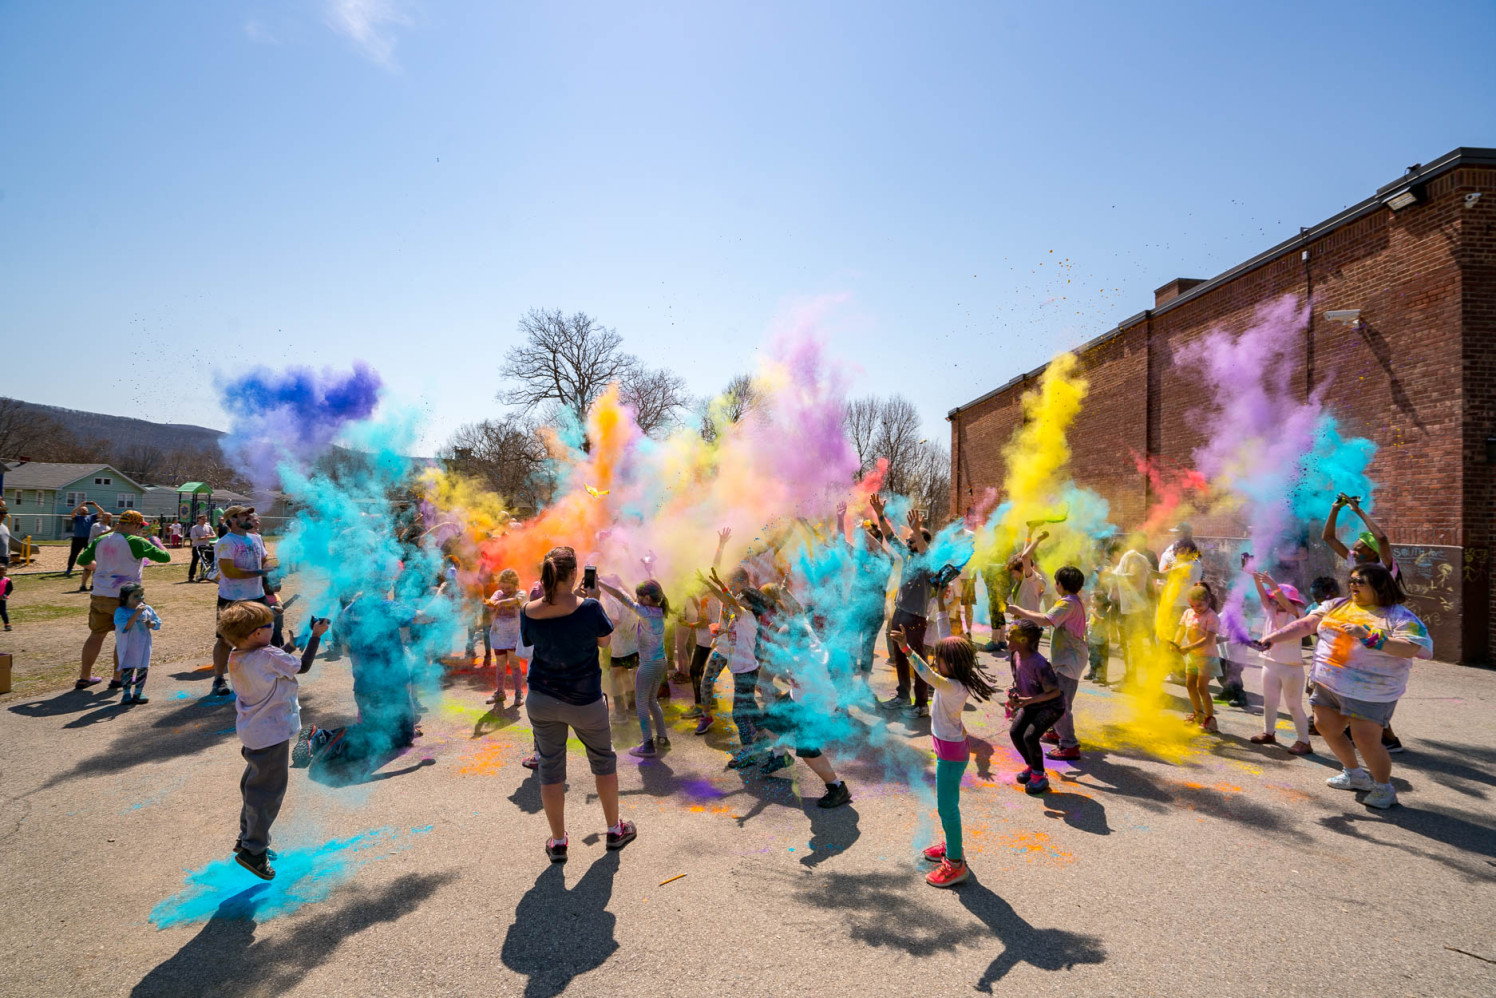 20180414-color-run-8656.jpg